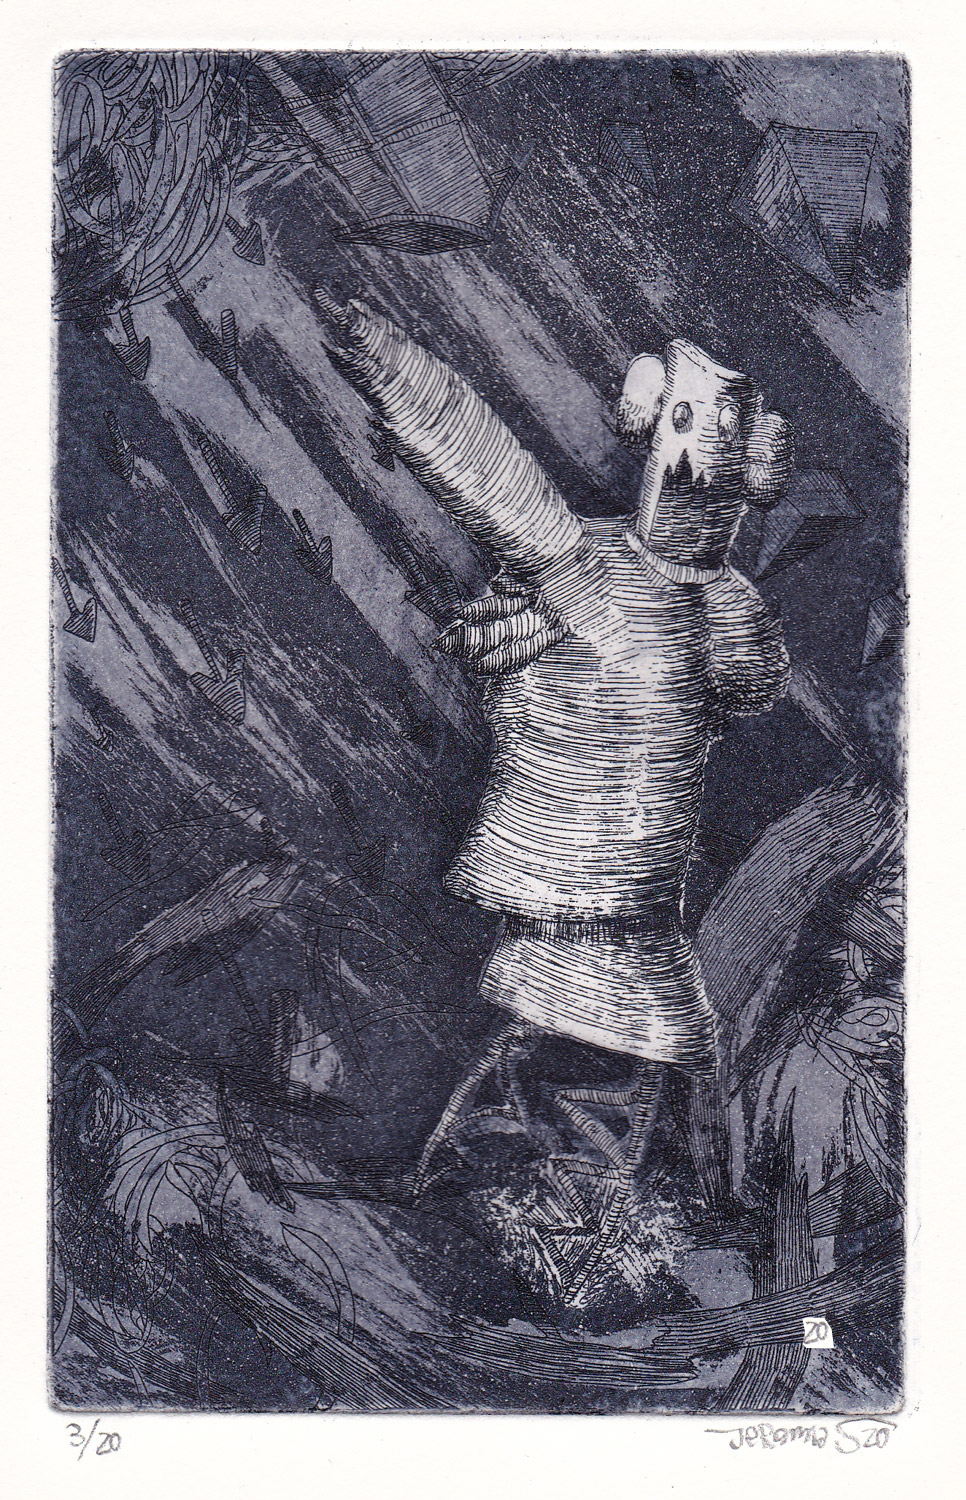 Problematic Person; 11 x 14 cm; etching on etching paper; edition of 20; 2020